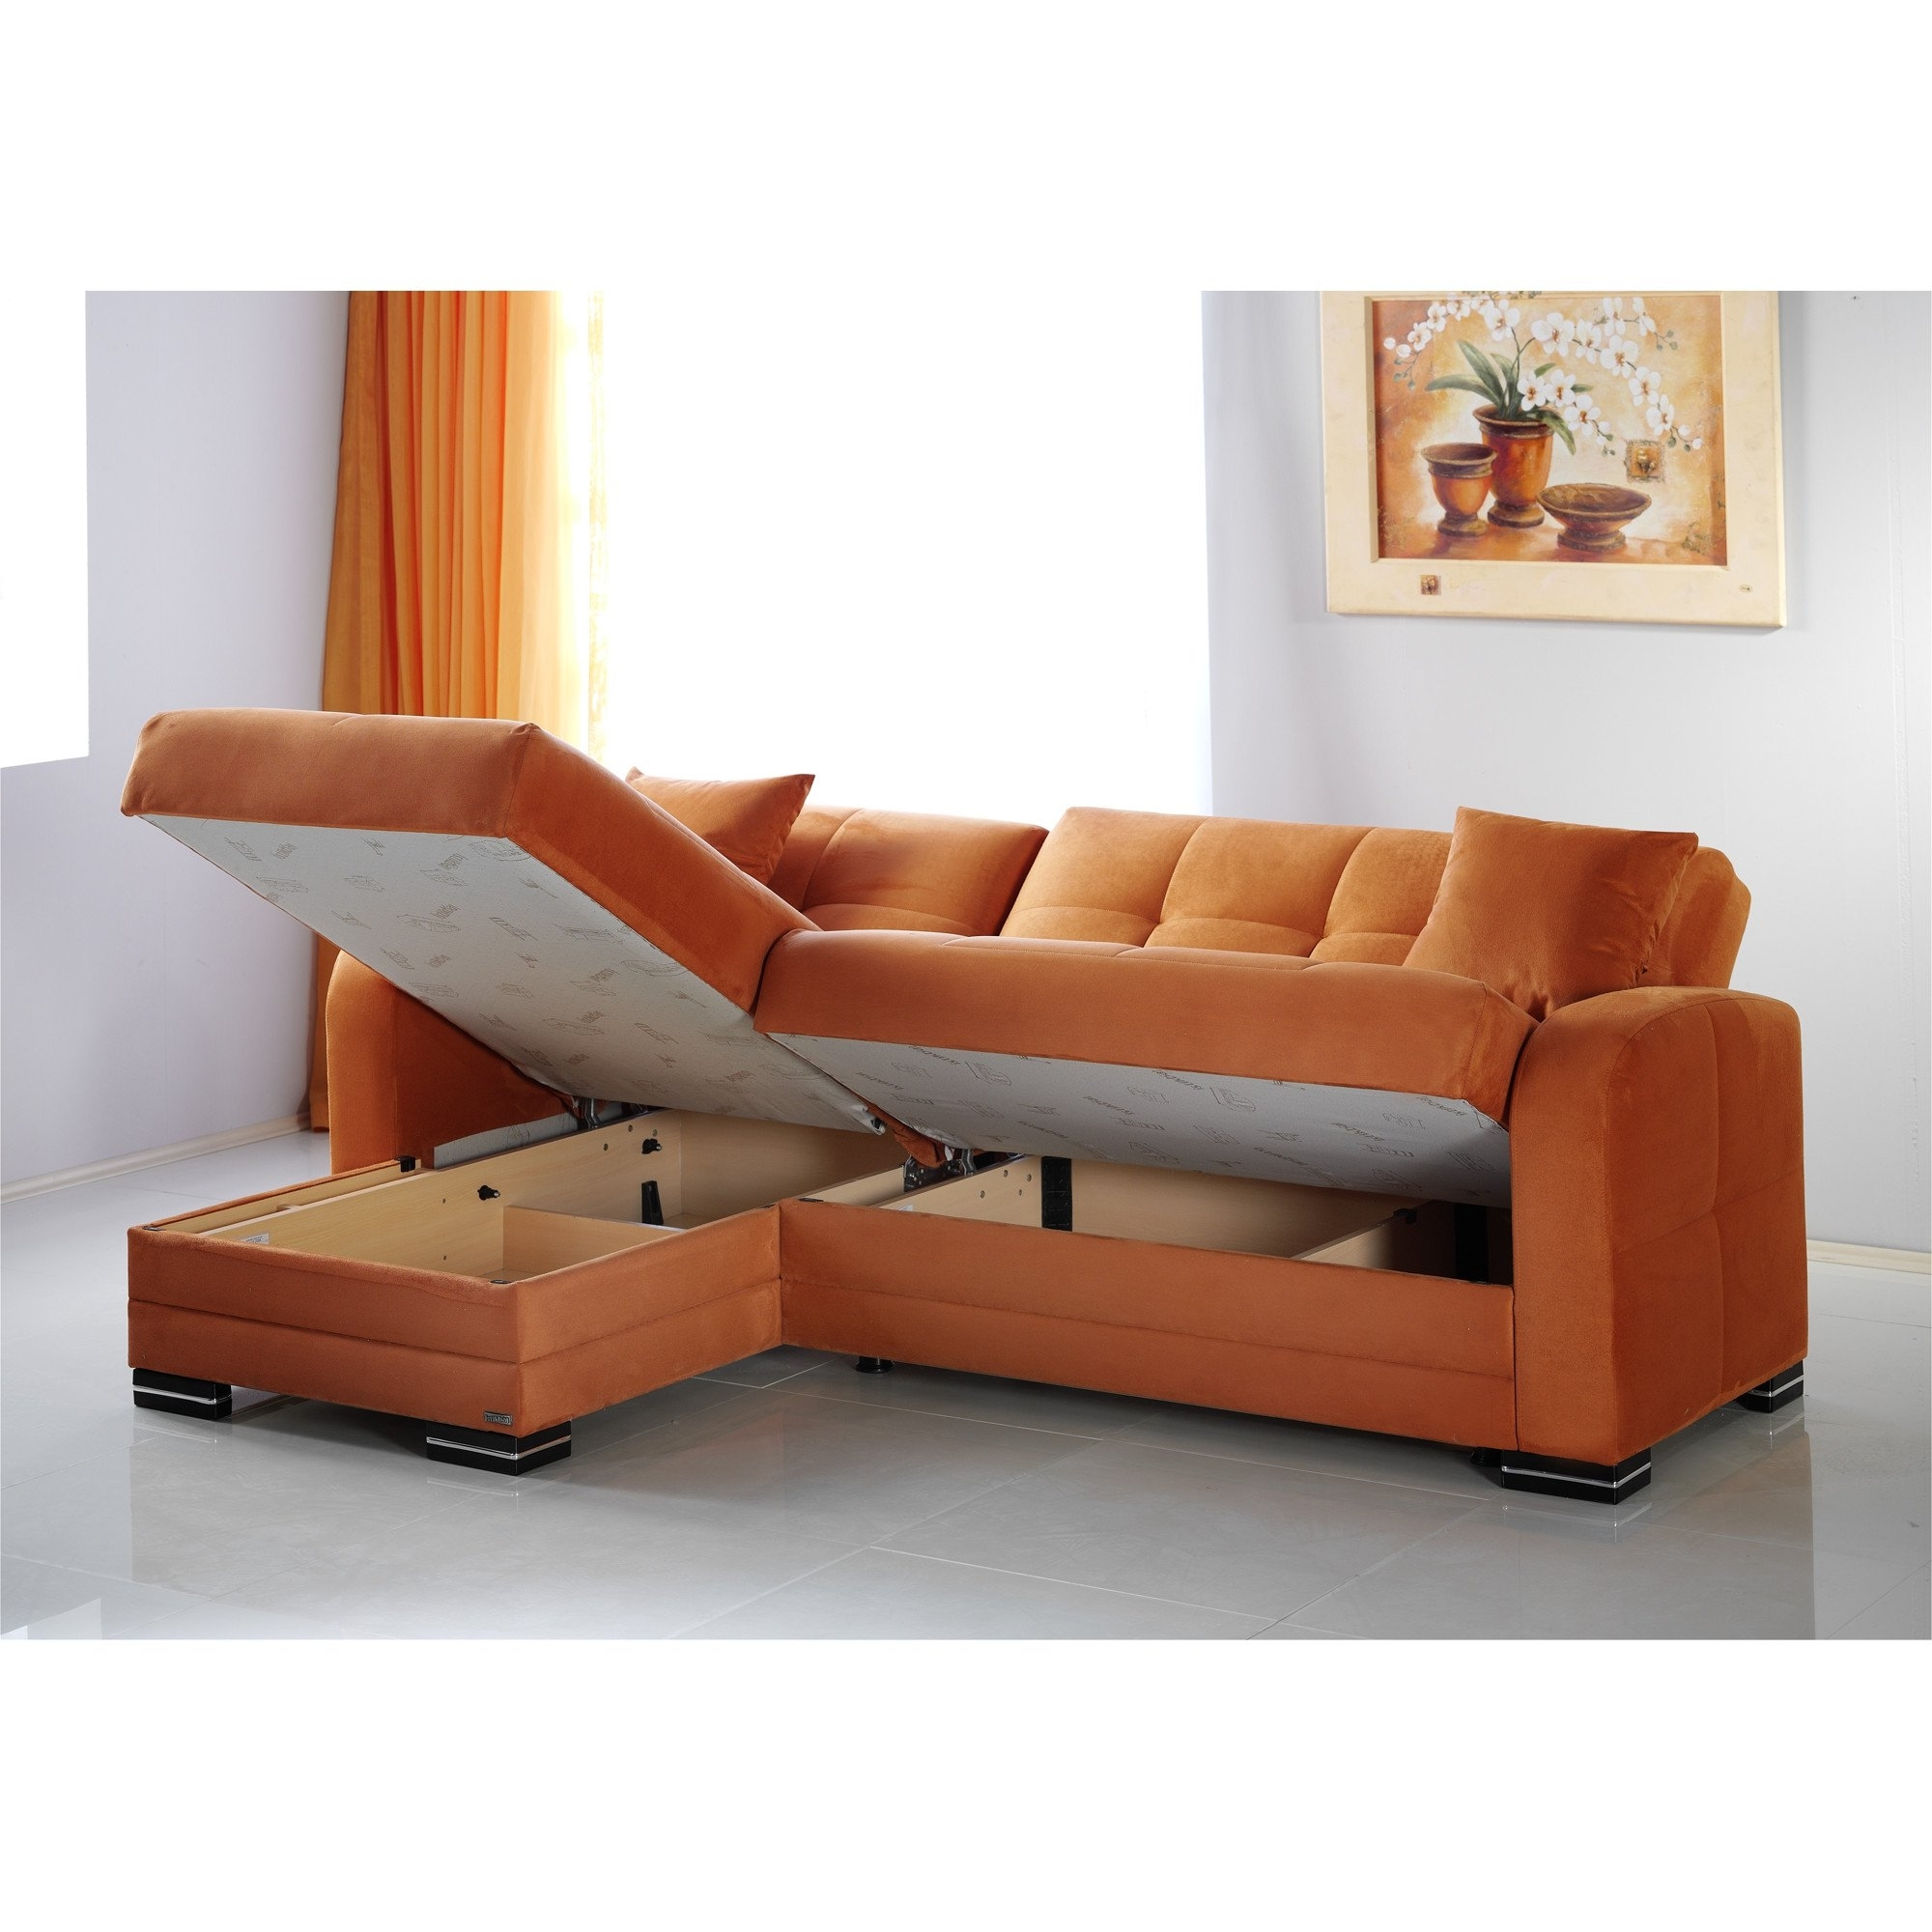 Widely Used Kubo Rainbow Orange Sectional Sofasunset For Sofas With Reversible Chaise (View 13 of 15)